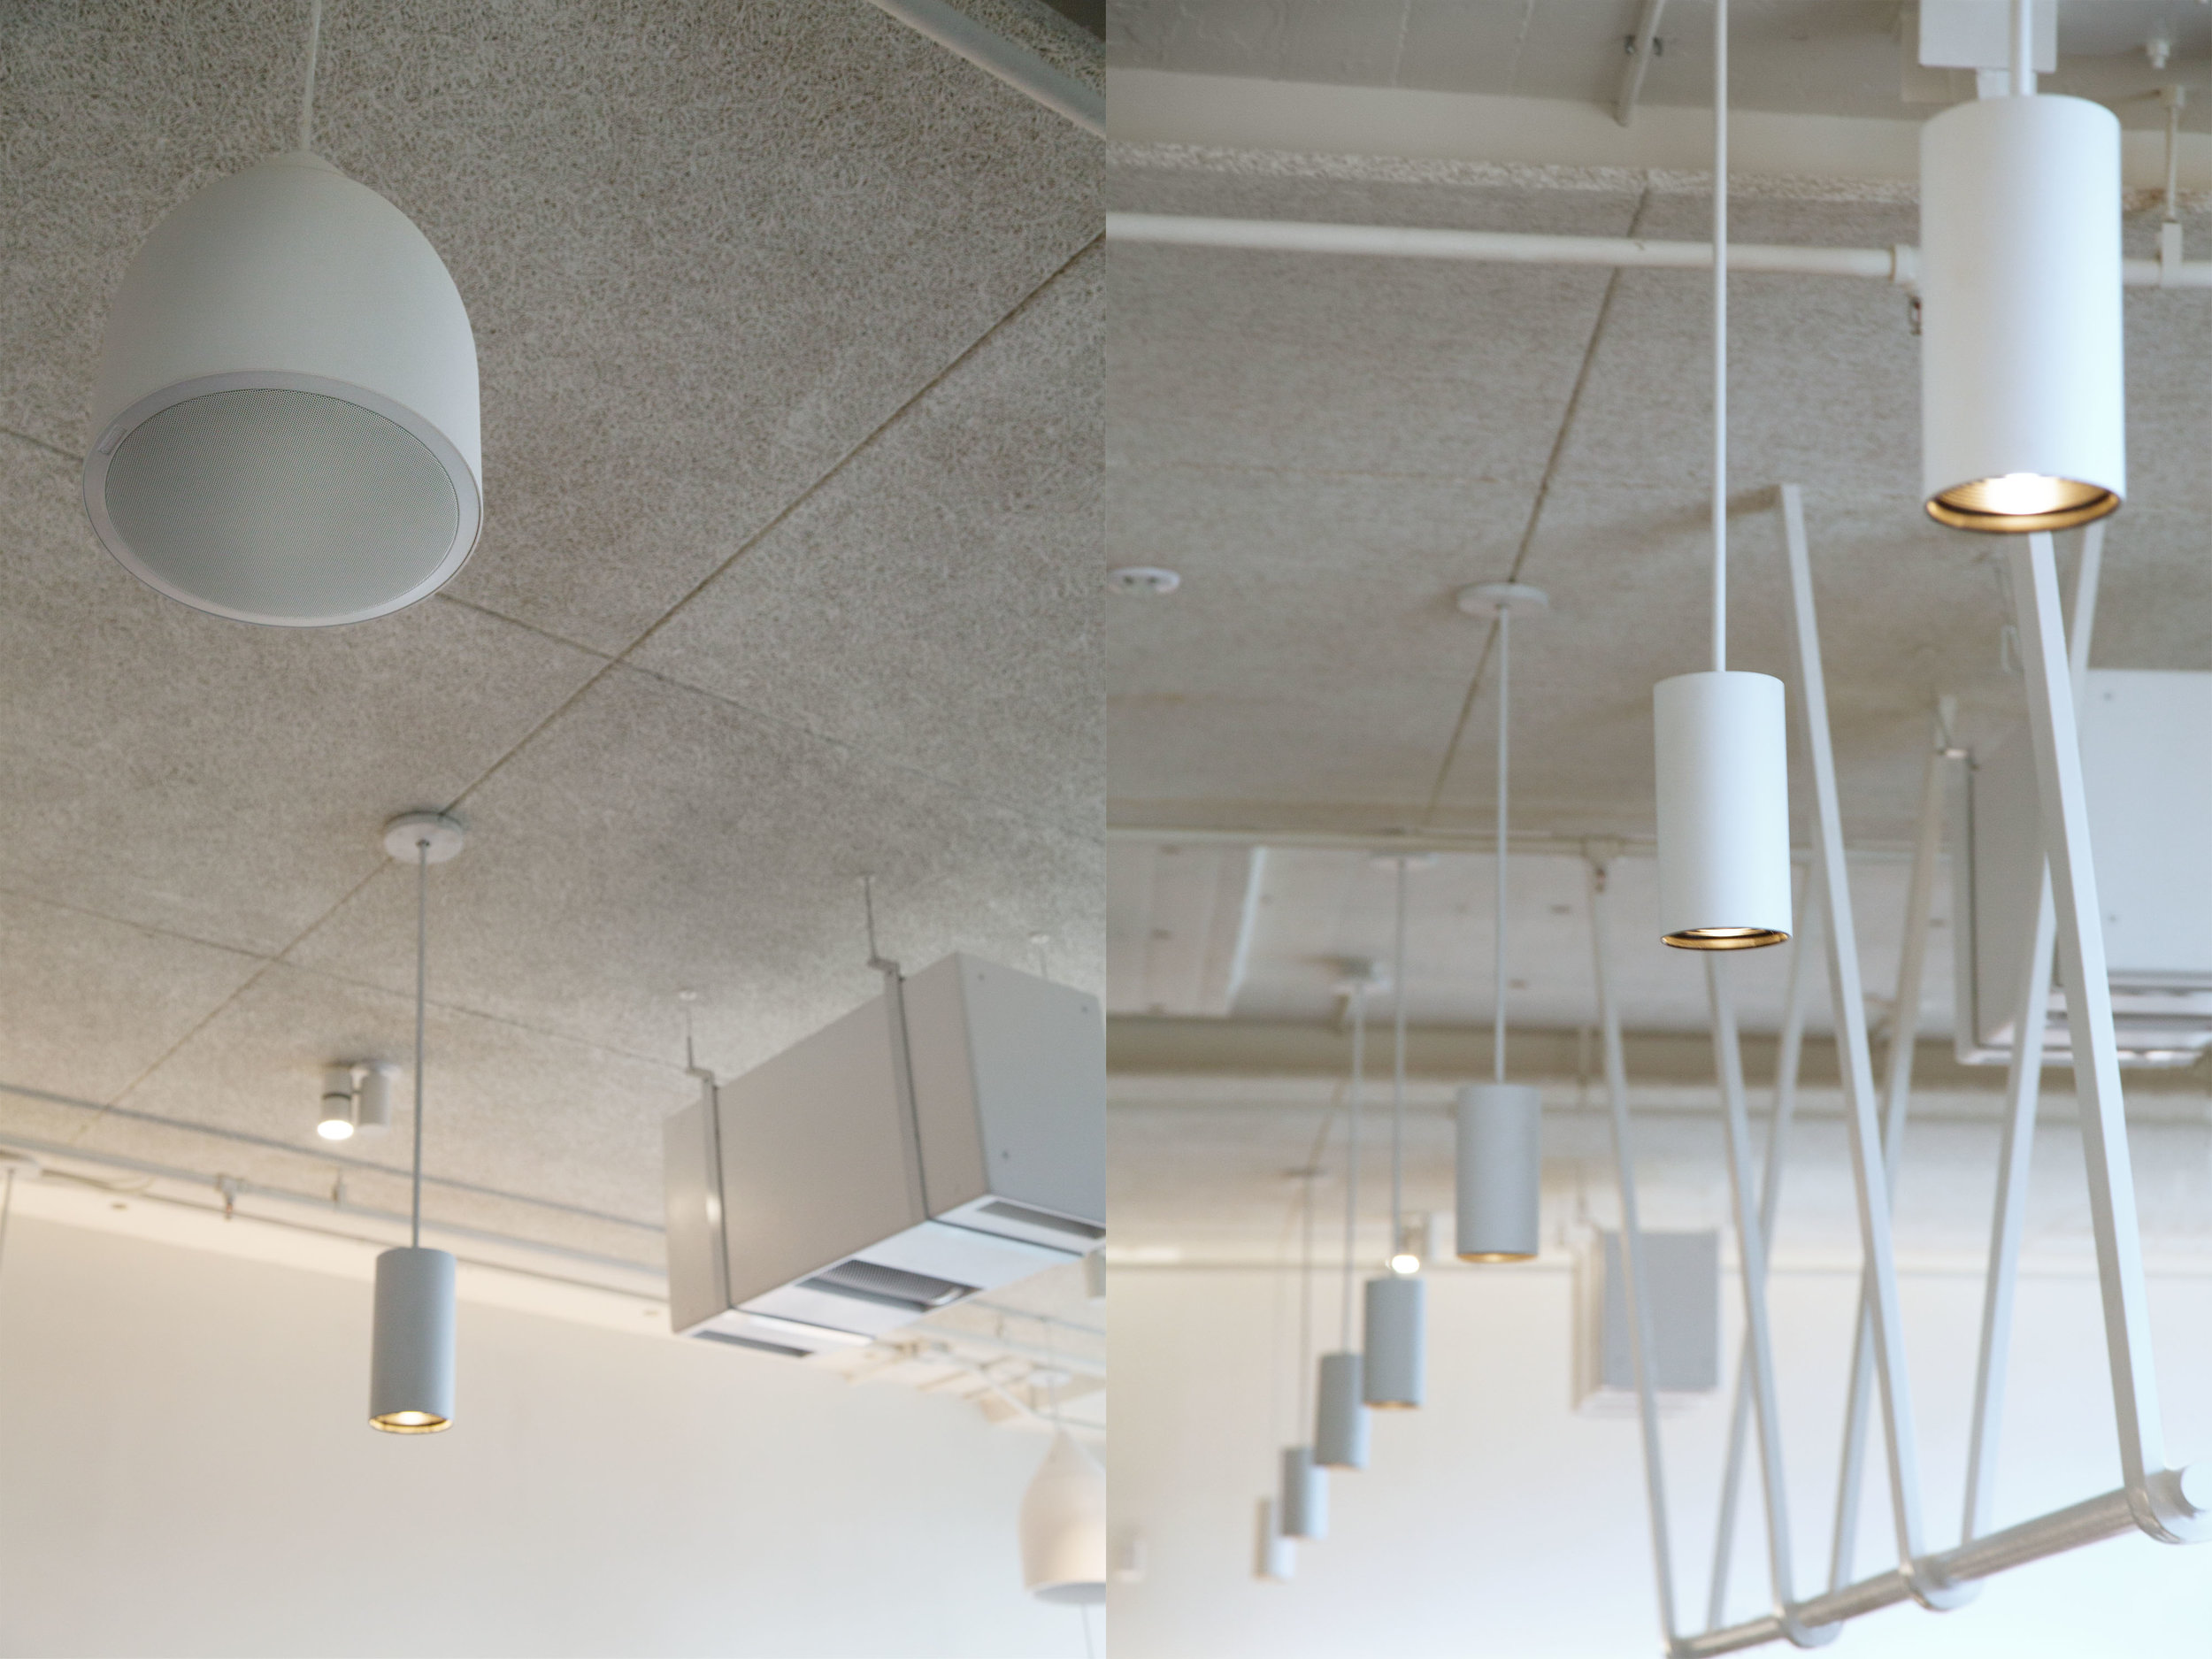 Pendant speakers, custom hung subwoofers, and lighting pendants neatly pierce through a Tectum-paneled acoustic ceiling.